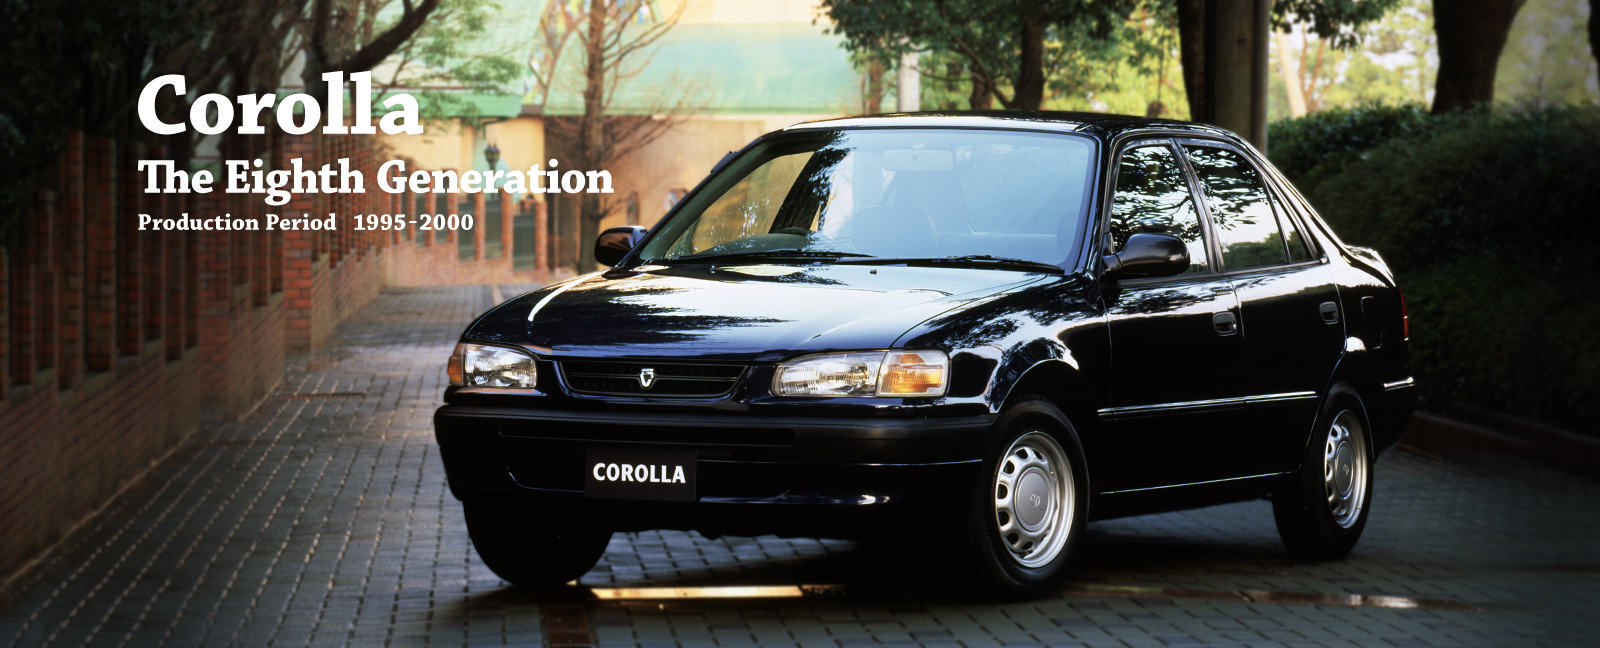 Toyota Global Site Corolla The Eighth Generation 03 1994 Engine Intake Diagram Vehicle Heritage